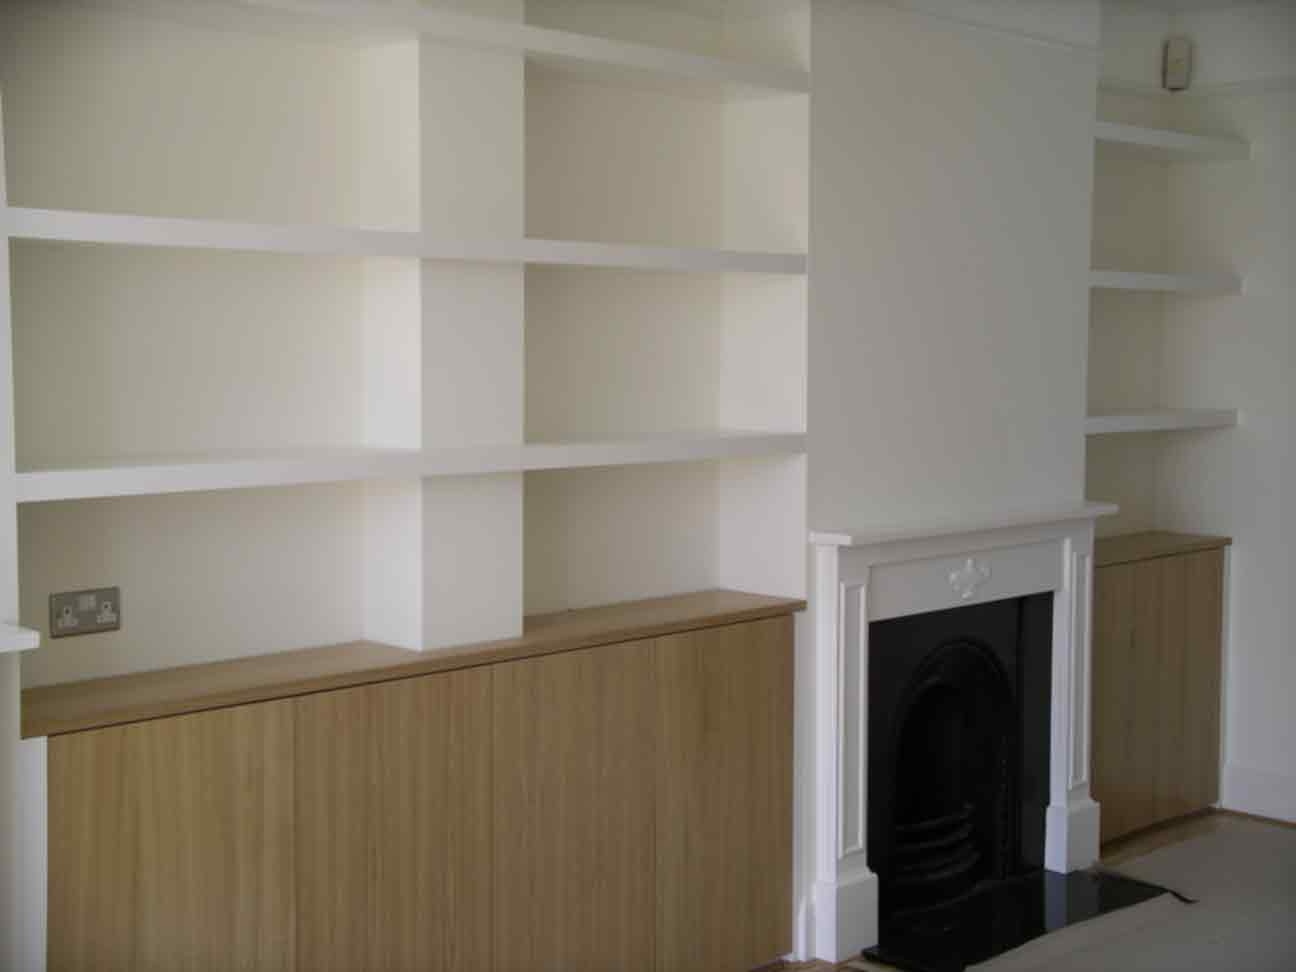 Amazing Build In Cupboards Designs With Built In Cupboards Intended For Built In Cupboard Shelving (View 2 of 15)